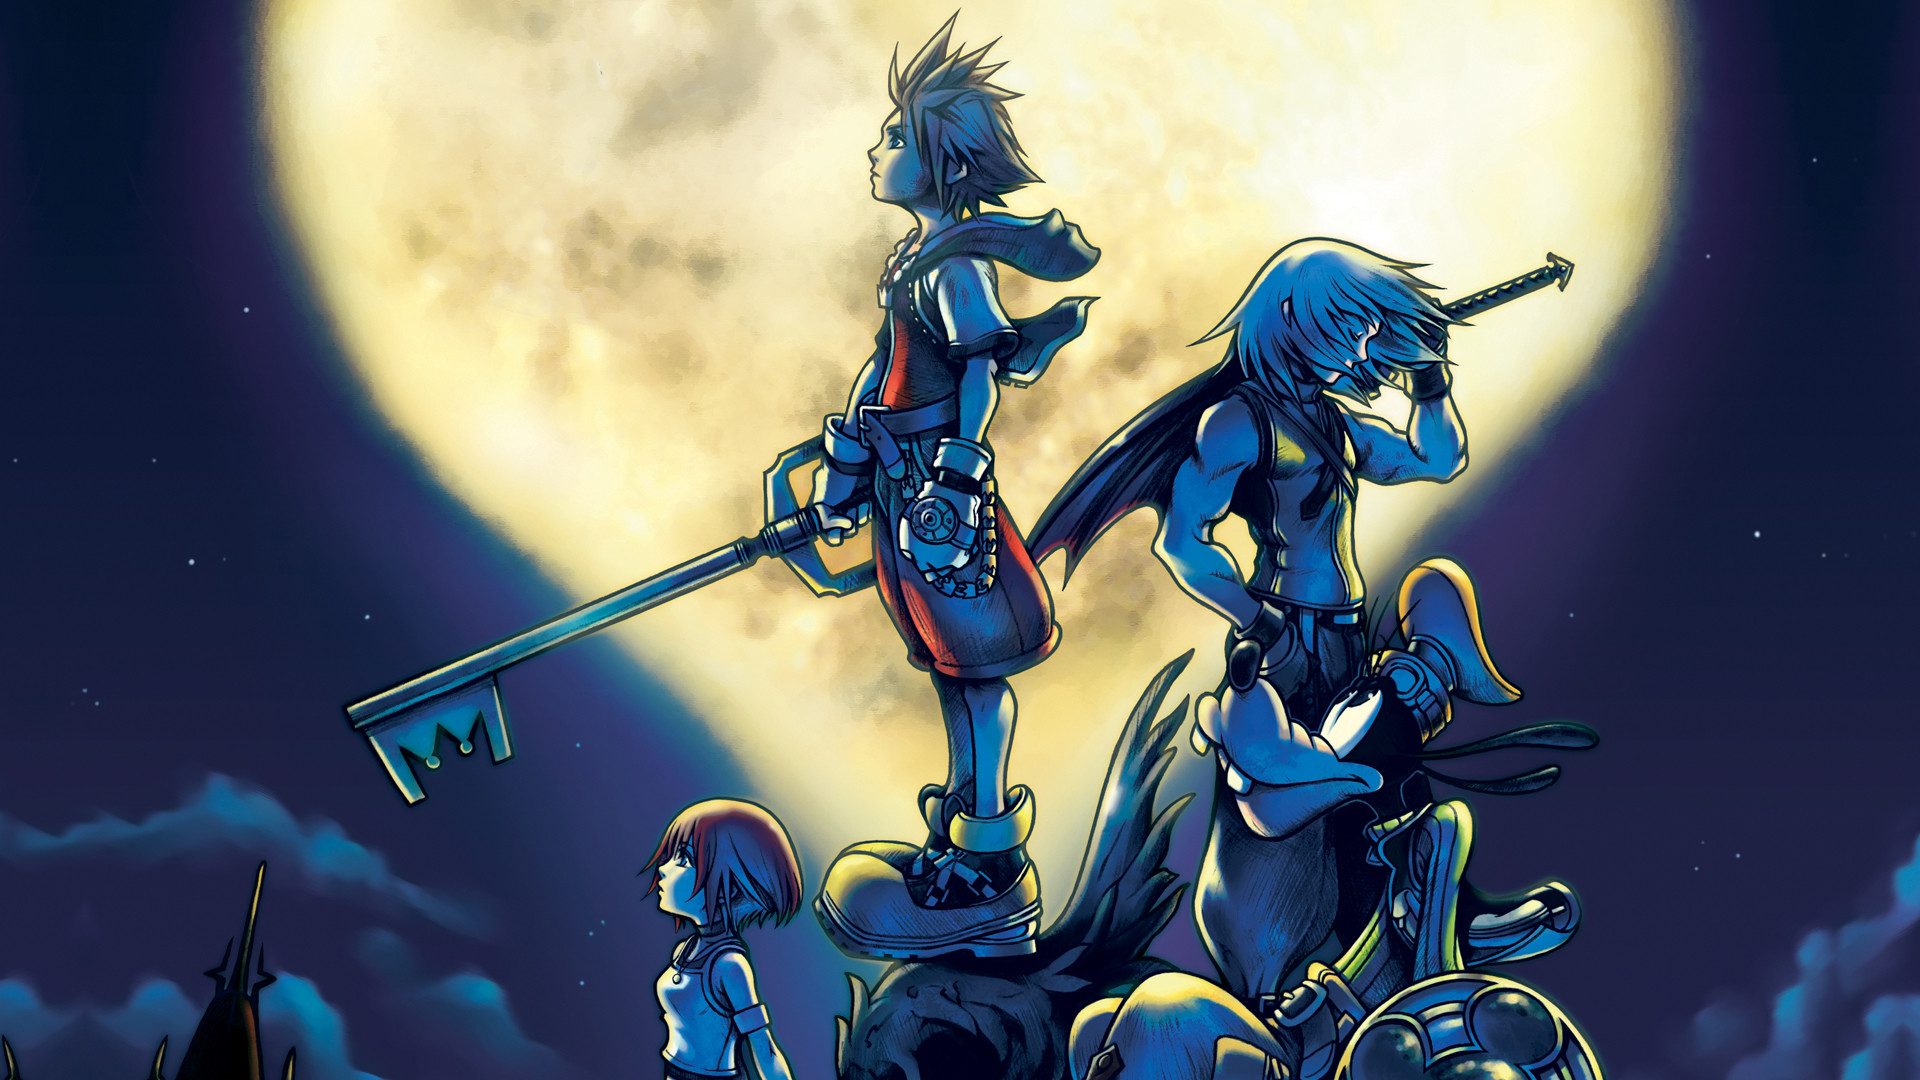 Res: 1920x1080, hd wallpaper Kingdom Hearts Wallpaper HD